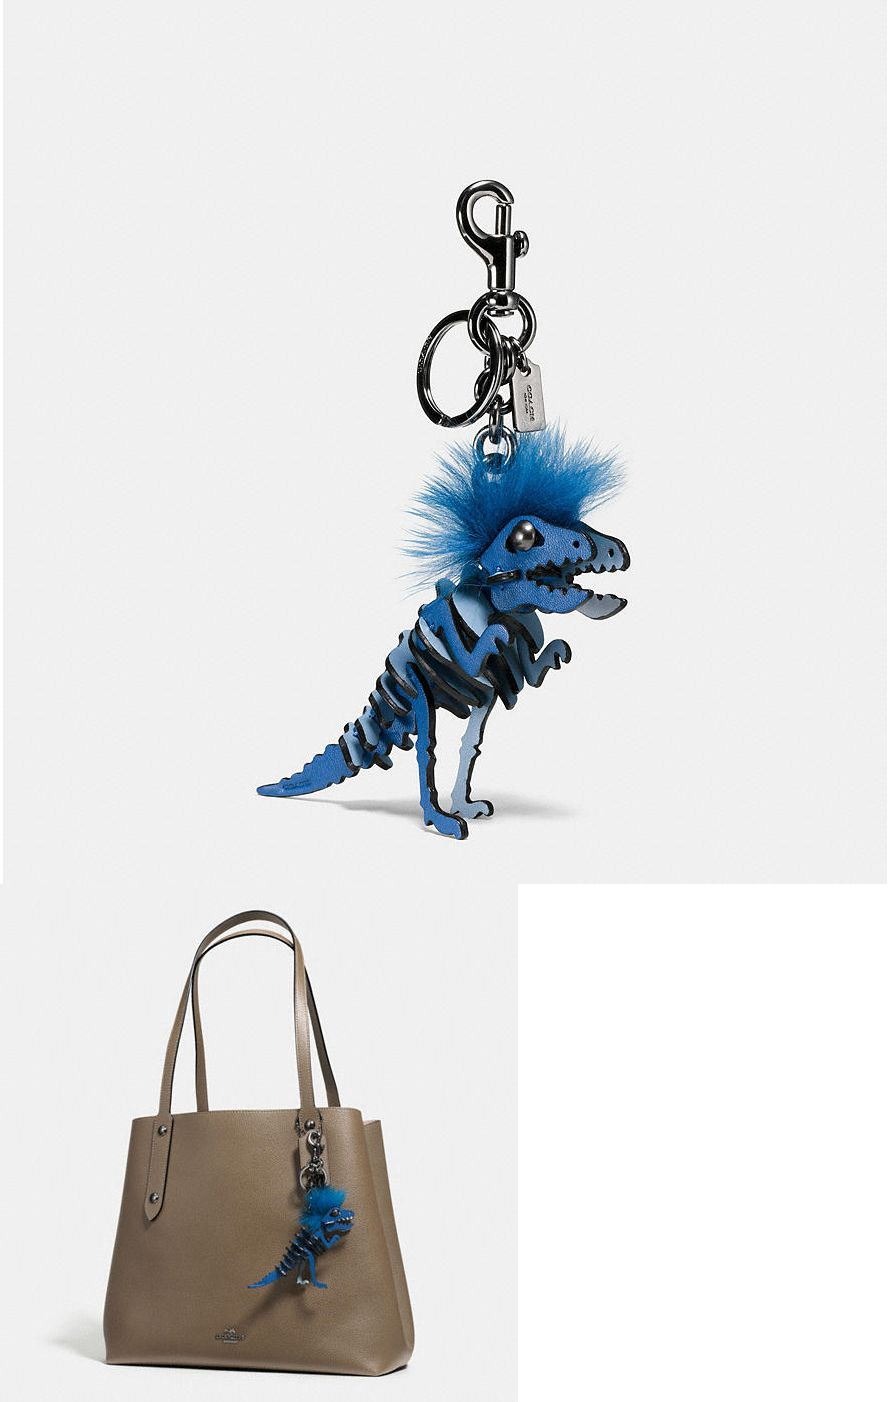 35be16b061 Key Chains Rings and Finders 45237  New Coach 58499 Mohawk Rexy Dinosaur Leather  Bag Charm Key Chain Cornflower -  BUY IT NOW ONLY   149.99 on eBay!